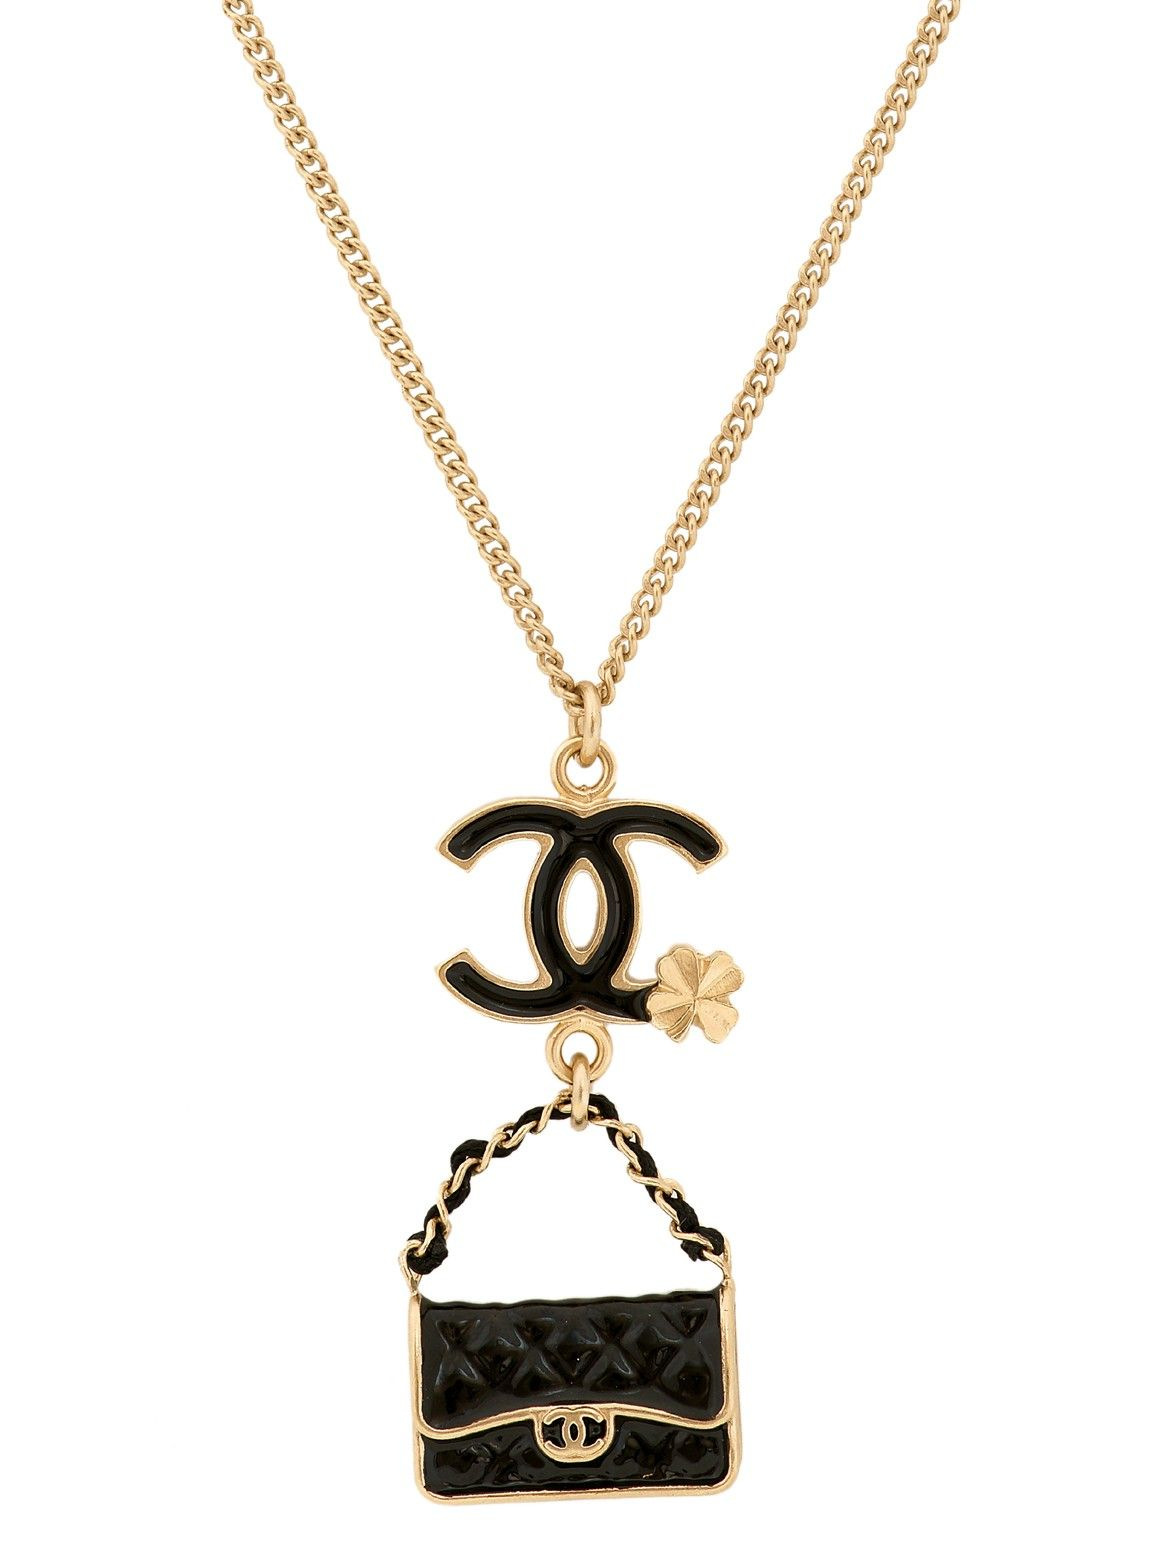 Vintage chanel clover and quilted black handbag pendant necklace at